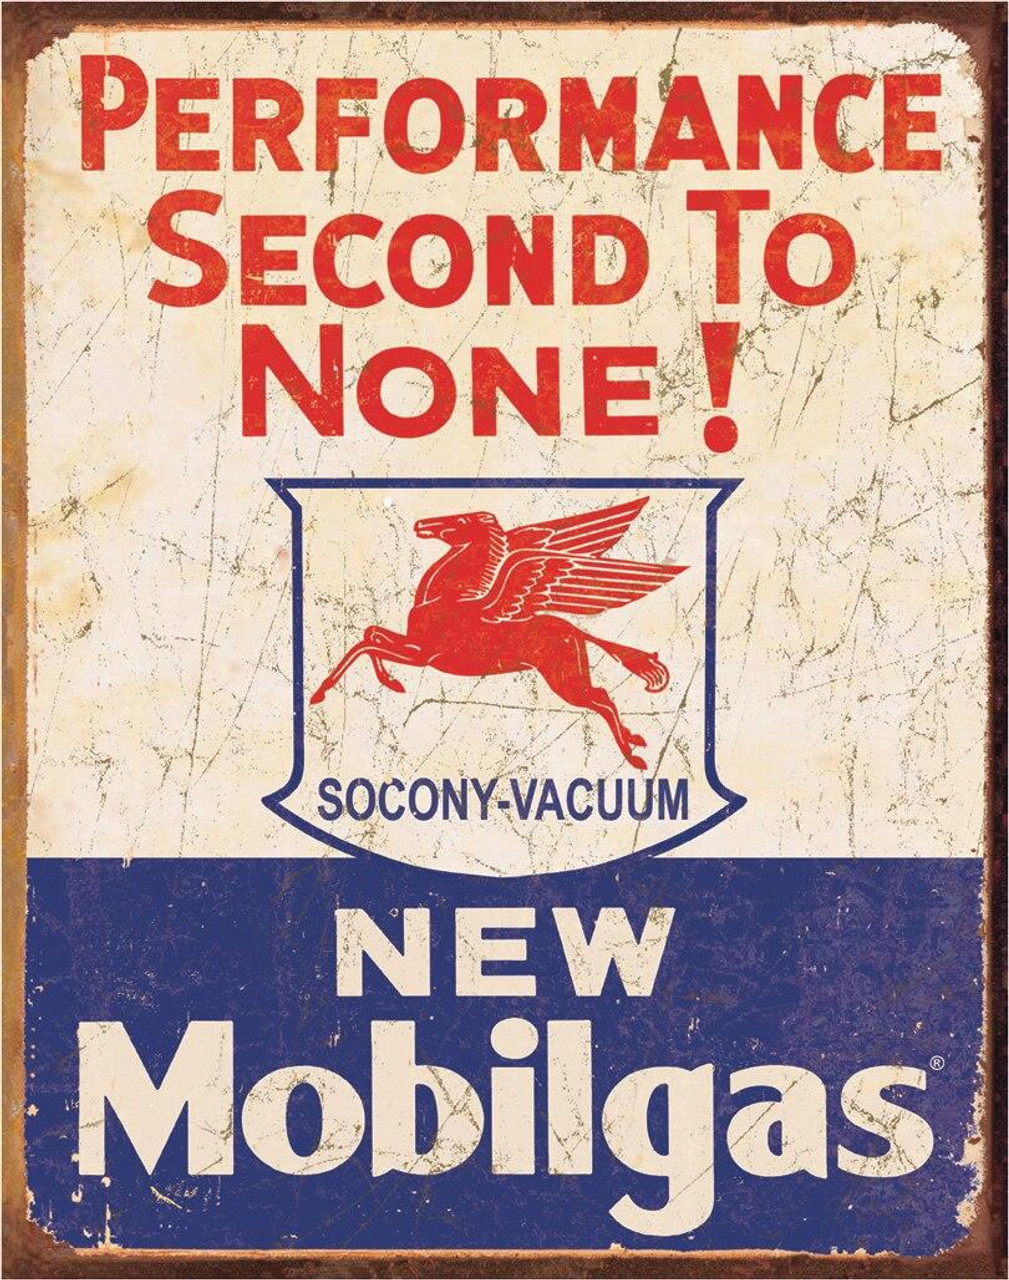 Mobilgas Mobil Gas - 2nd to None